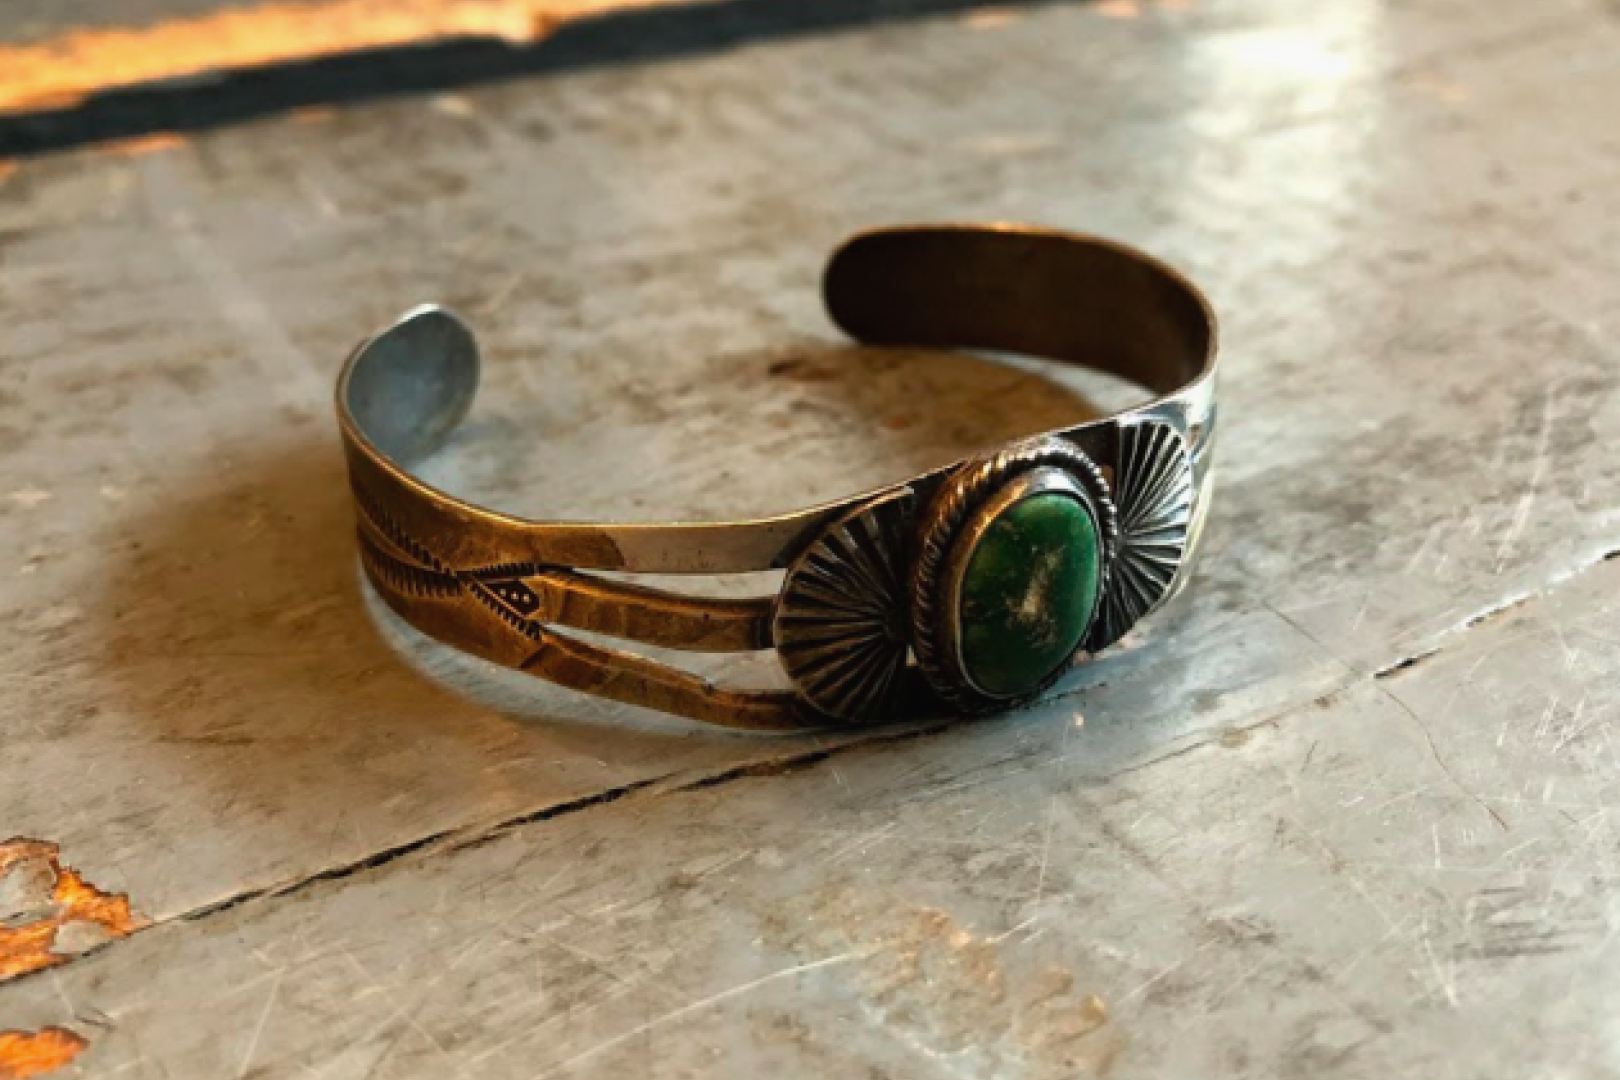 Independence Vintage Goods Crescent Fan Cuff Sterling Silver & Turquoise